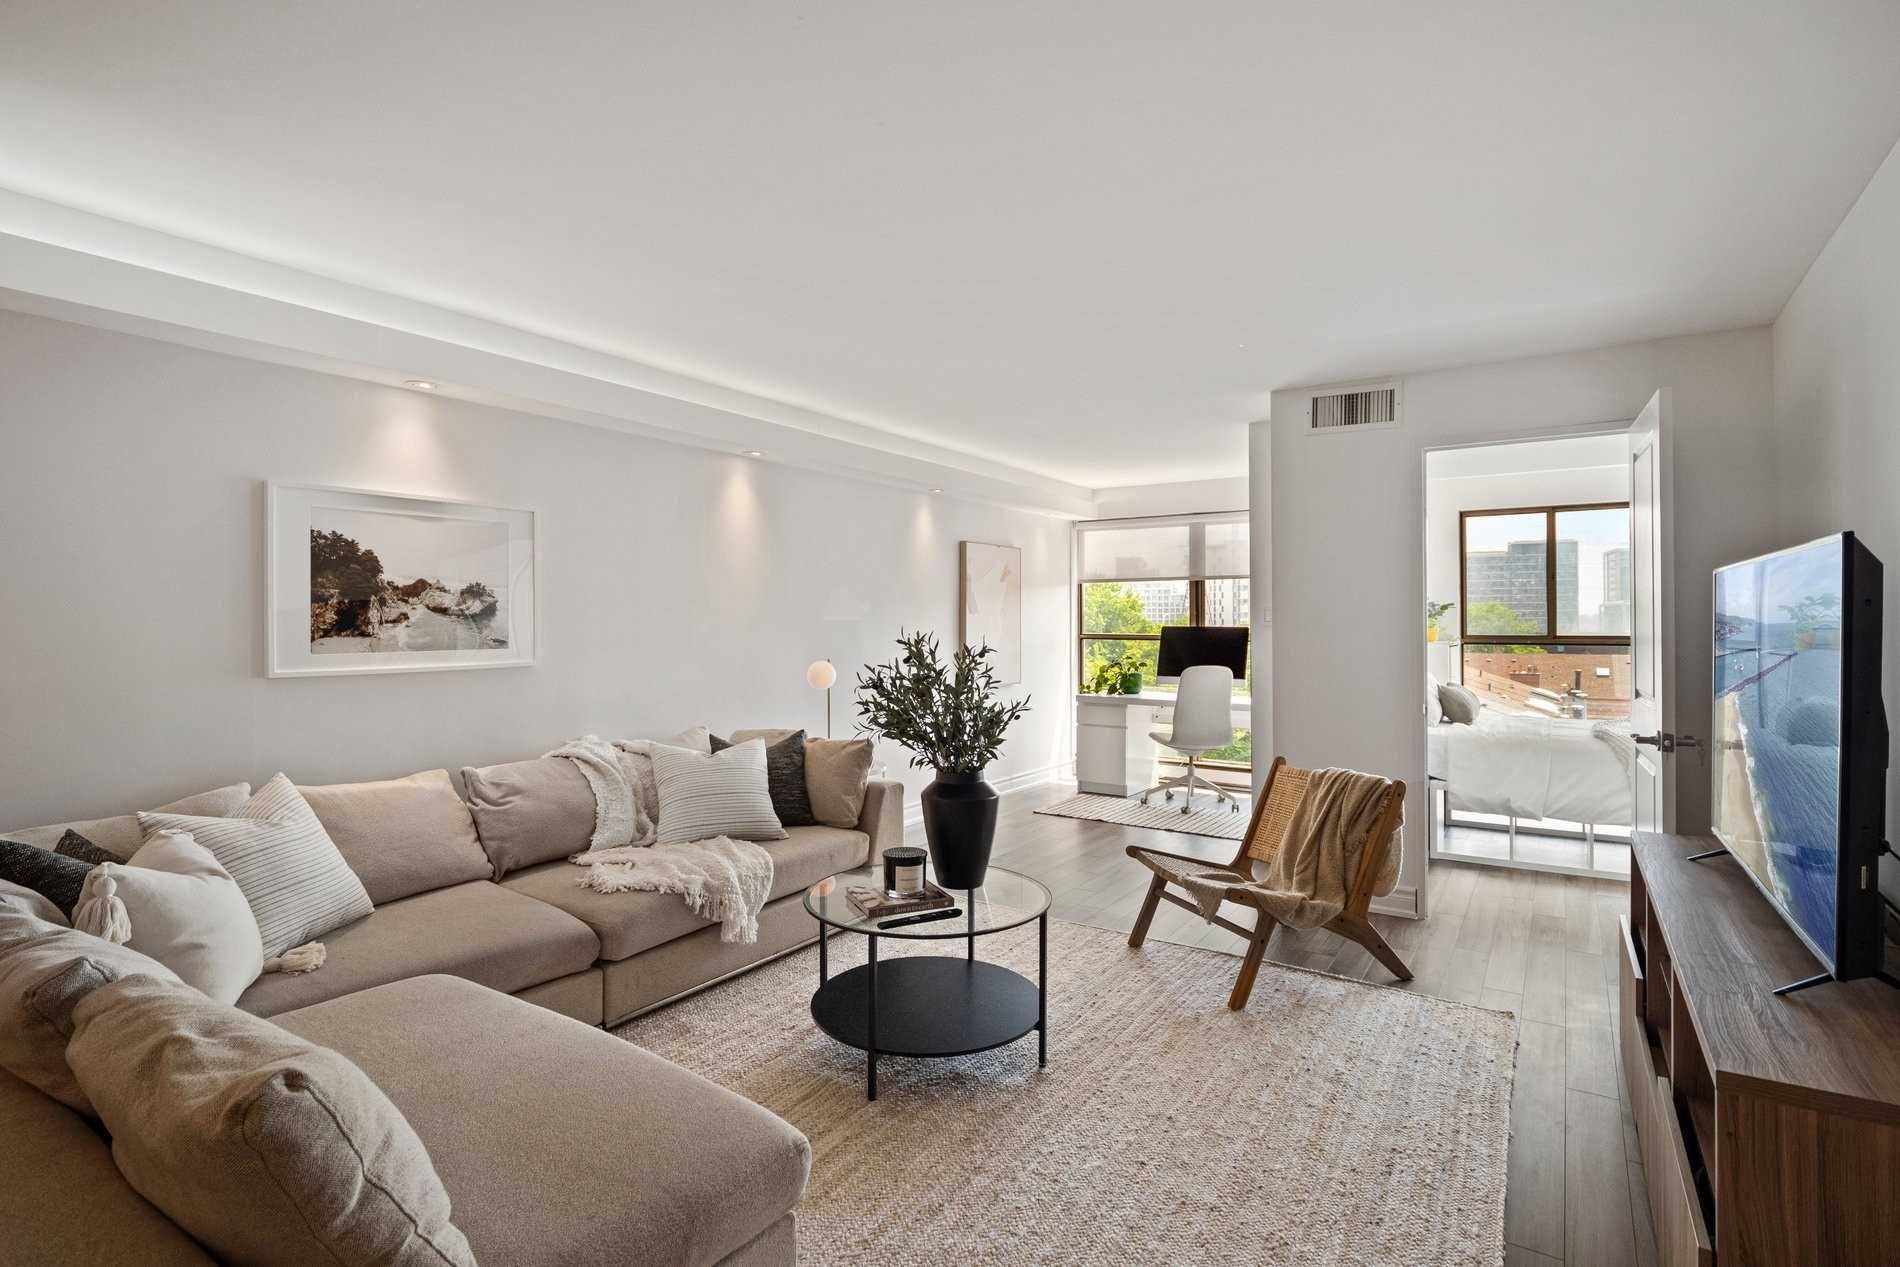 65 Scadding Ave, unit 610 for sale in Toronto - image #1